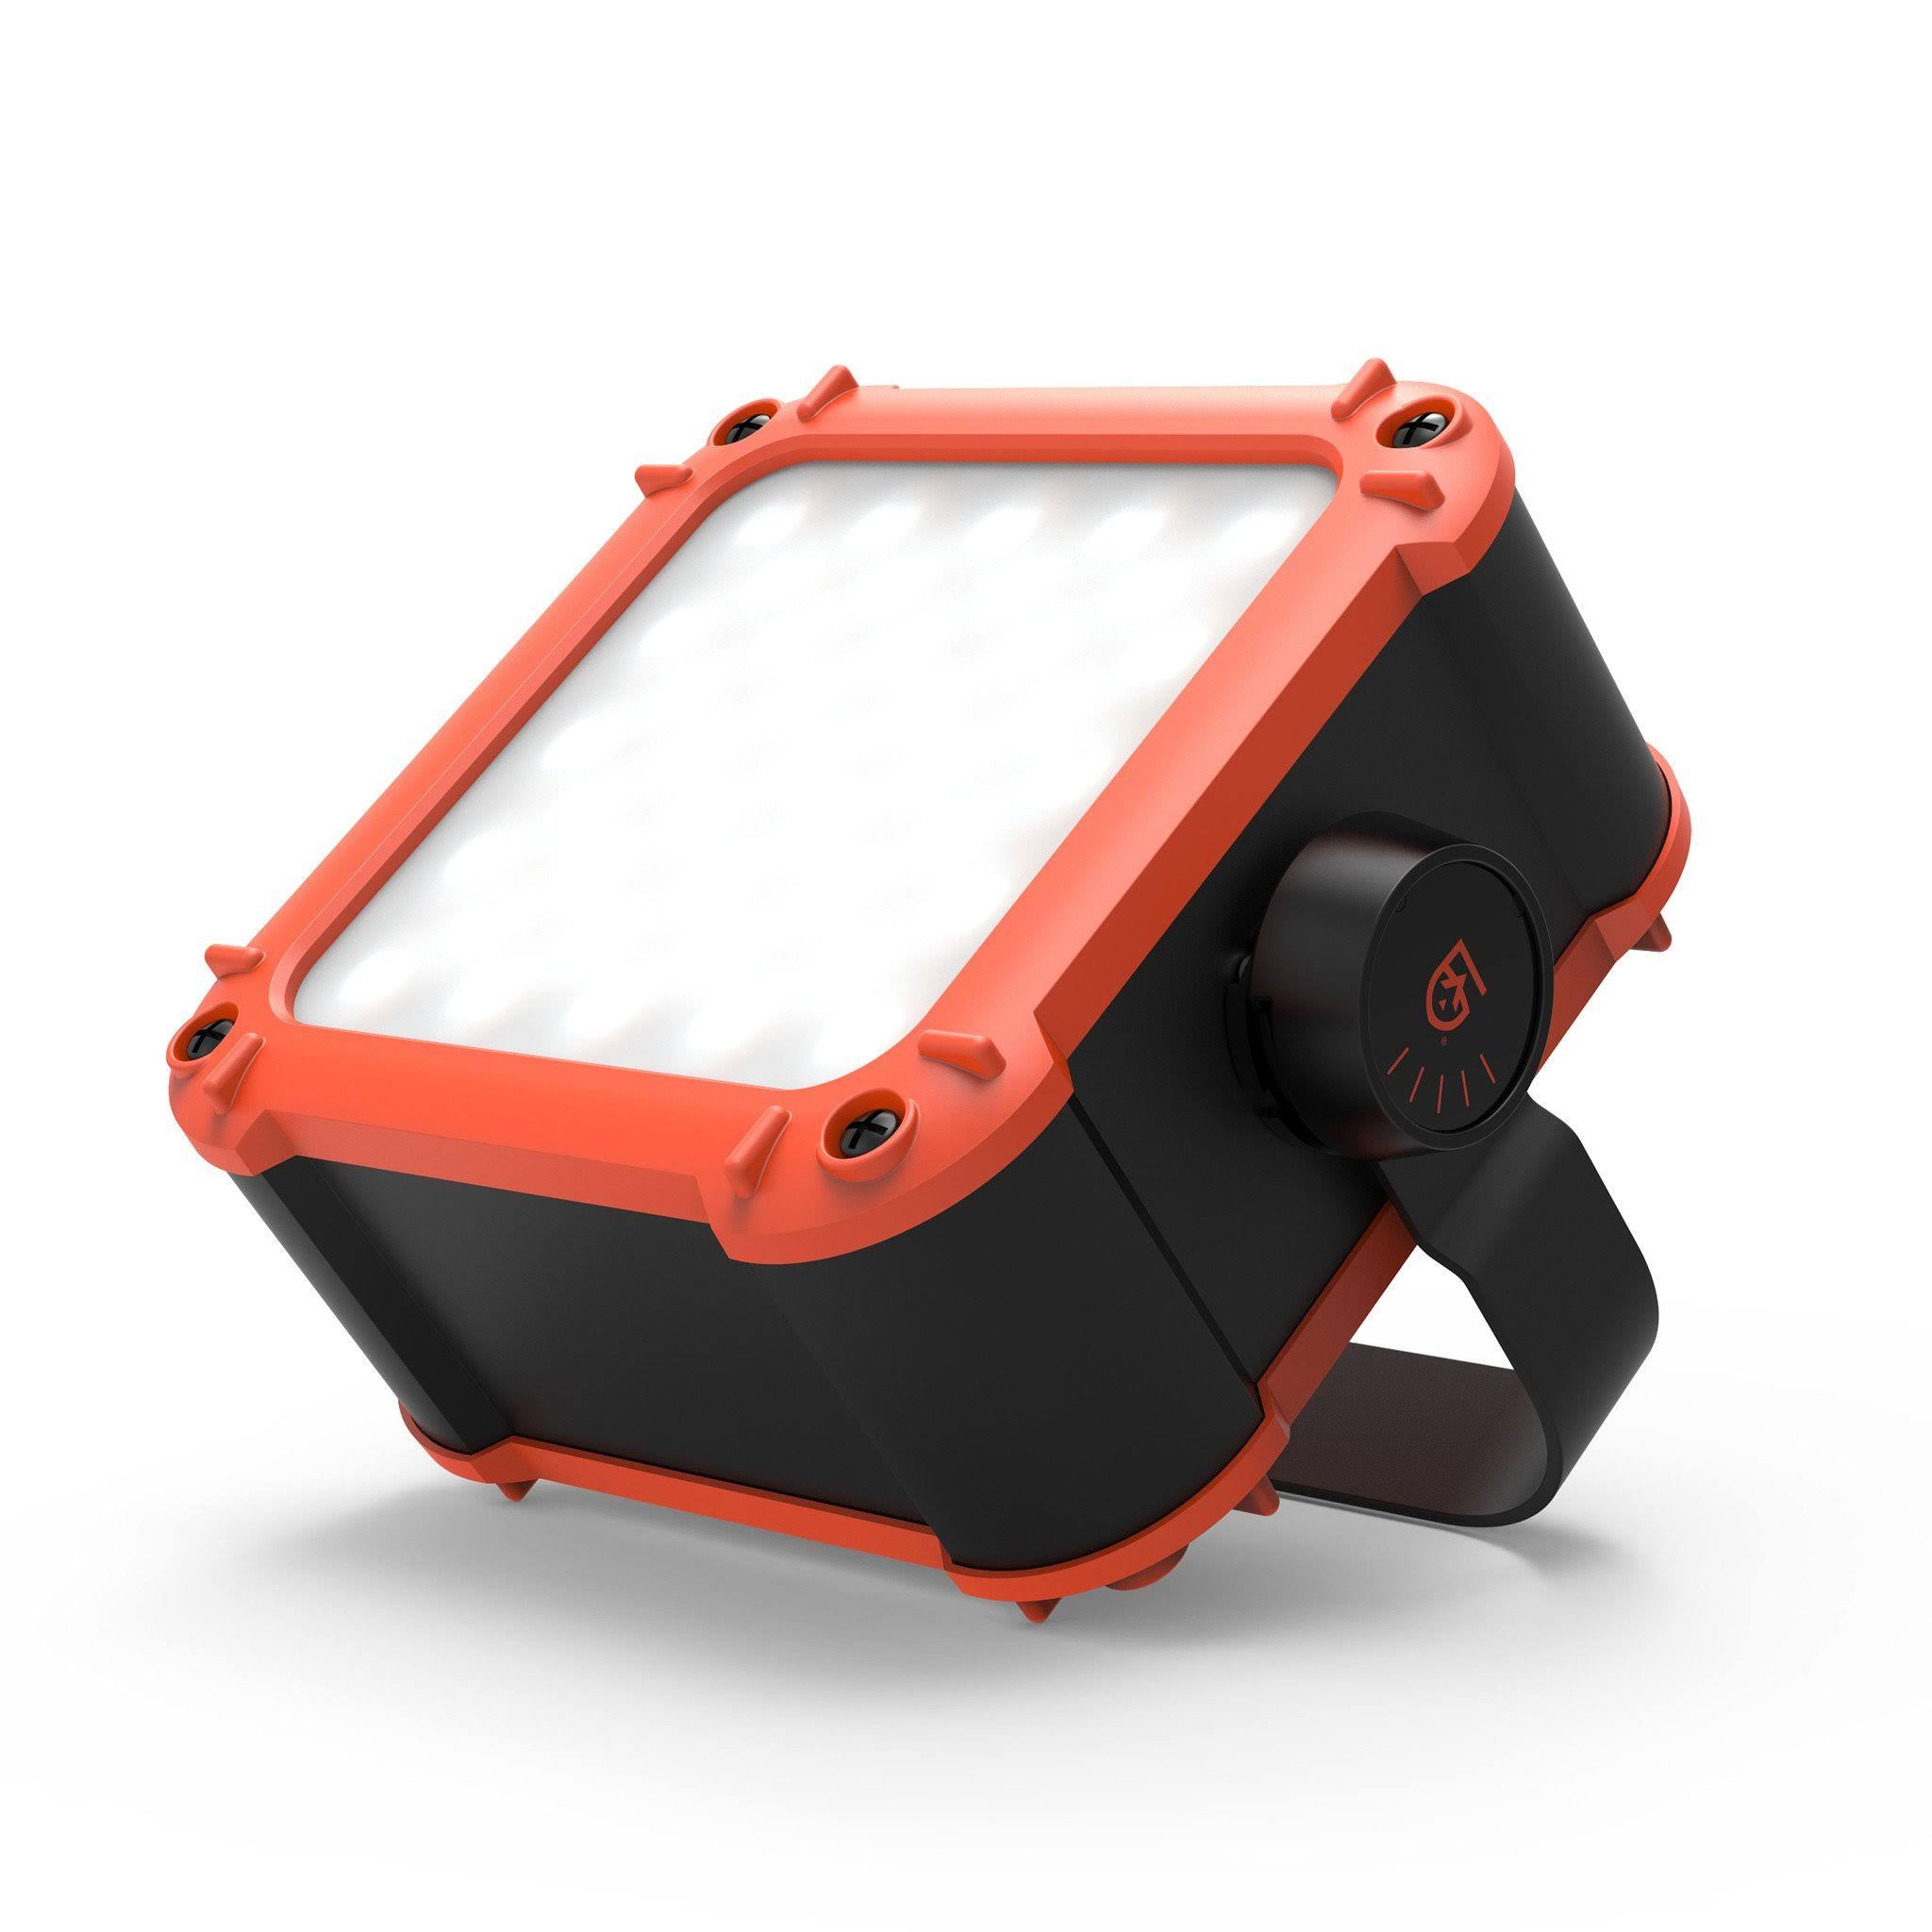 Gear Aid Flux Light & Power Station - 640 Lumens, 20,800mAh